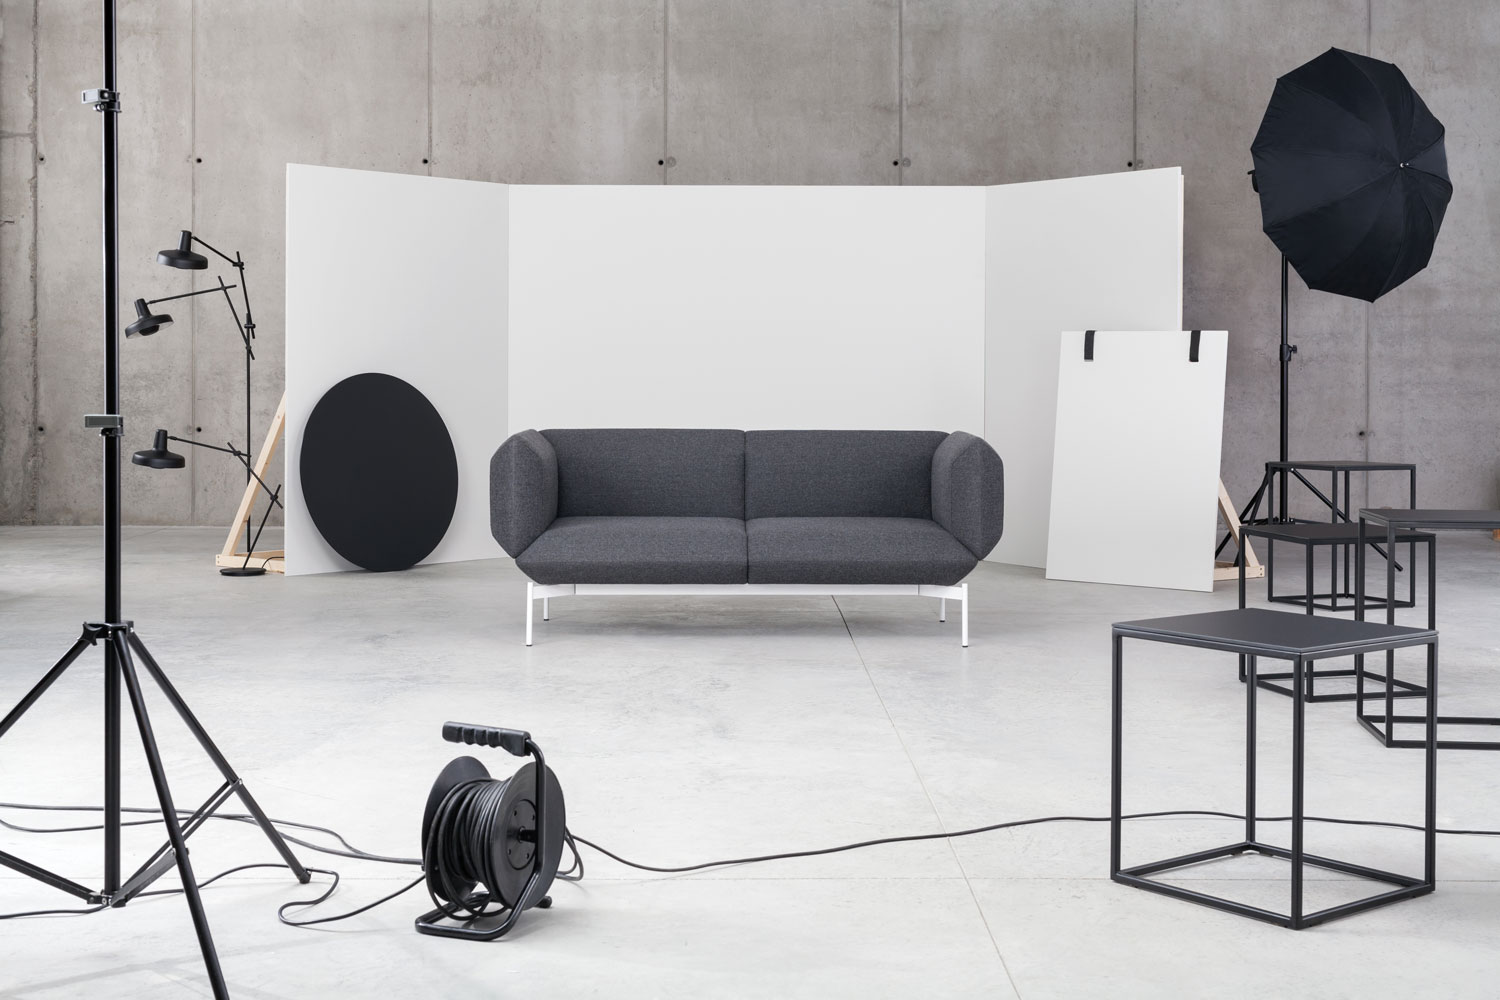 Croatian Furniture Brand Prostoria (English For U201croomu201d) Was Established In  2011 As A New Phase For Furniture Company, Kvadra.